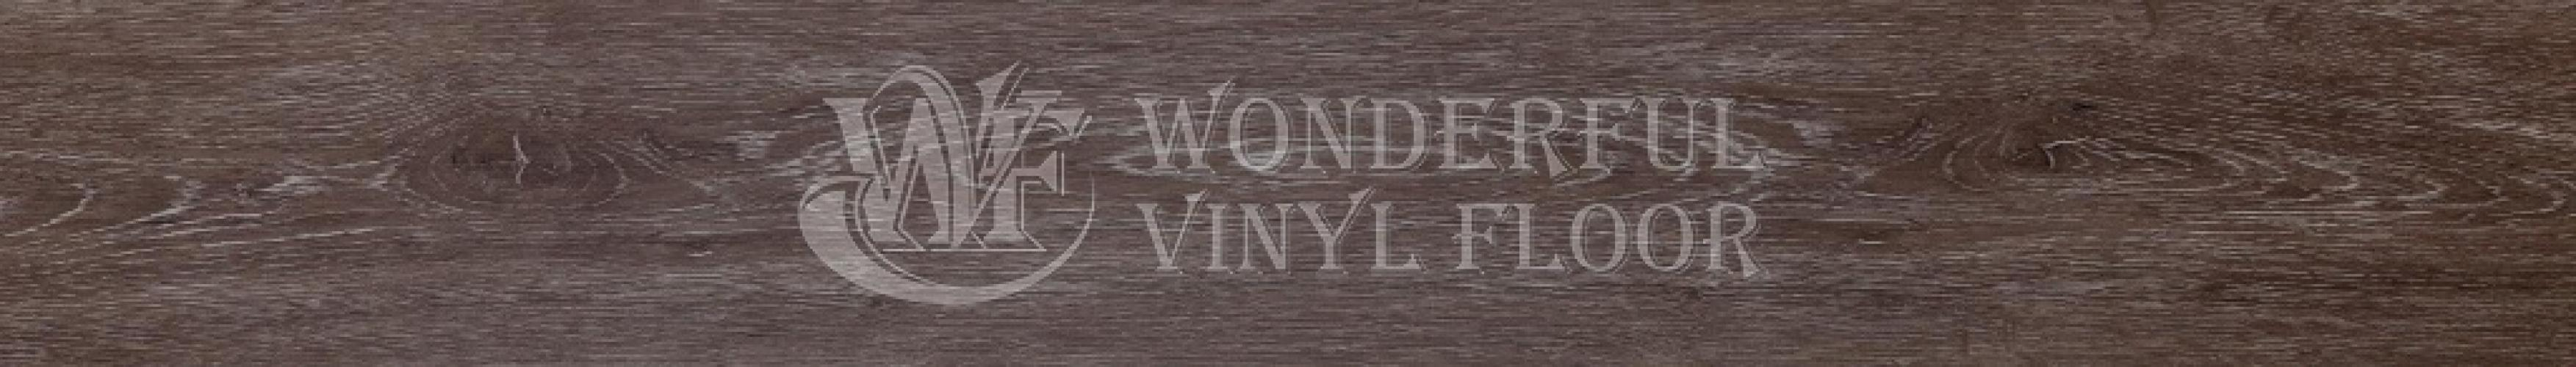 ПВХ плитка SPC Wonderful Vinyl Floor LX 718-5-19 Валанс